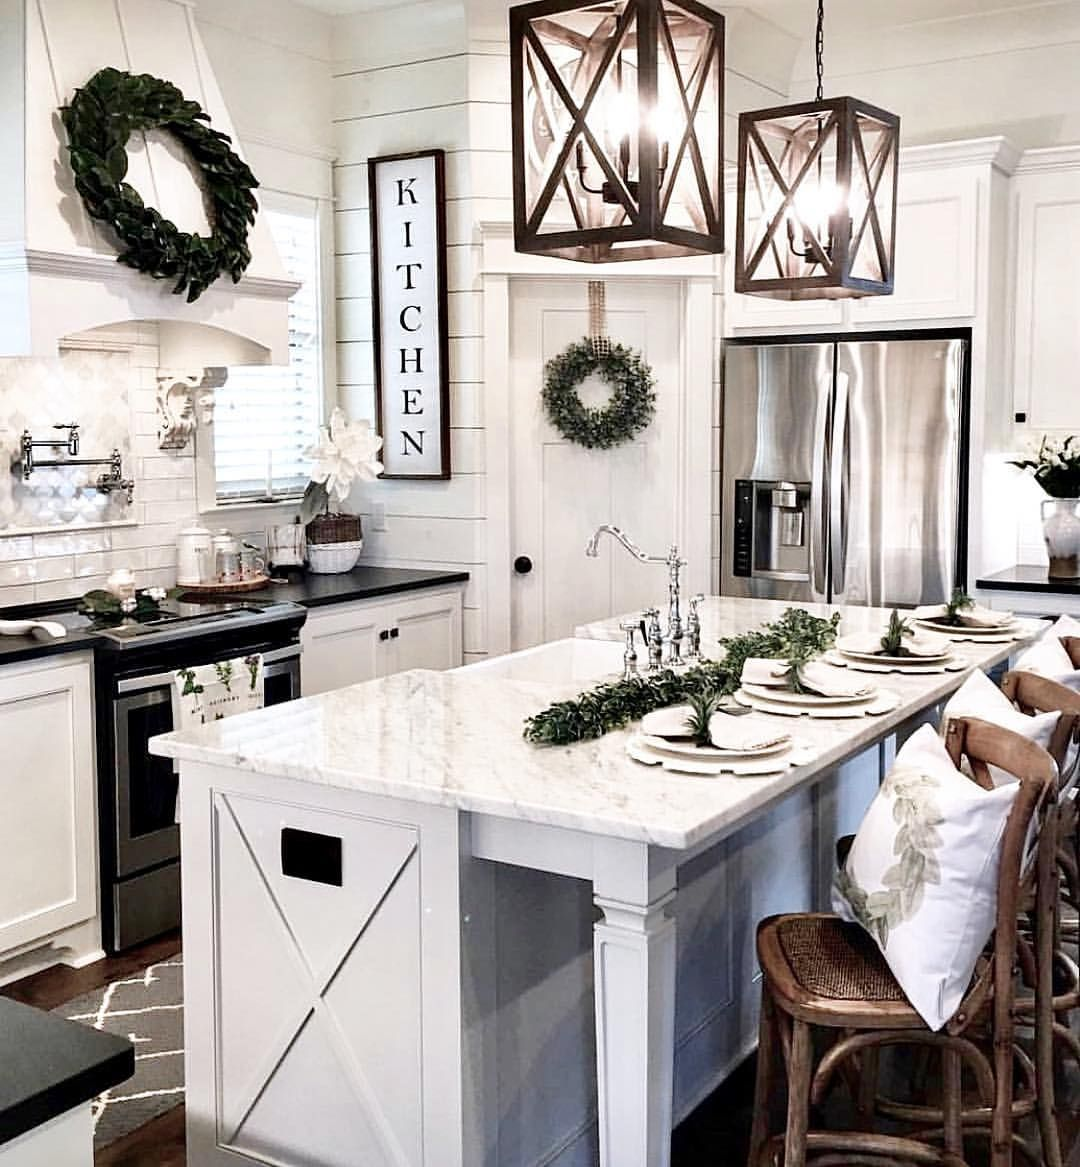 1 181 likes 15 comments jill gatheredgracedecor com on best farmhouse kitchen decor ideas and remodel create your dreams id=52572